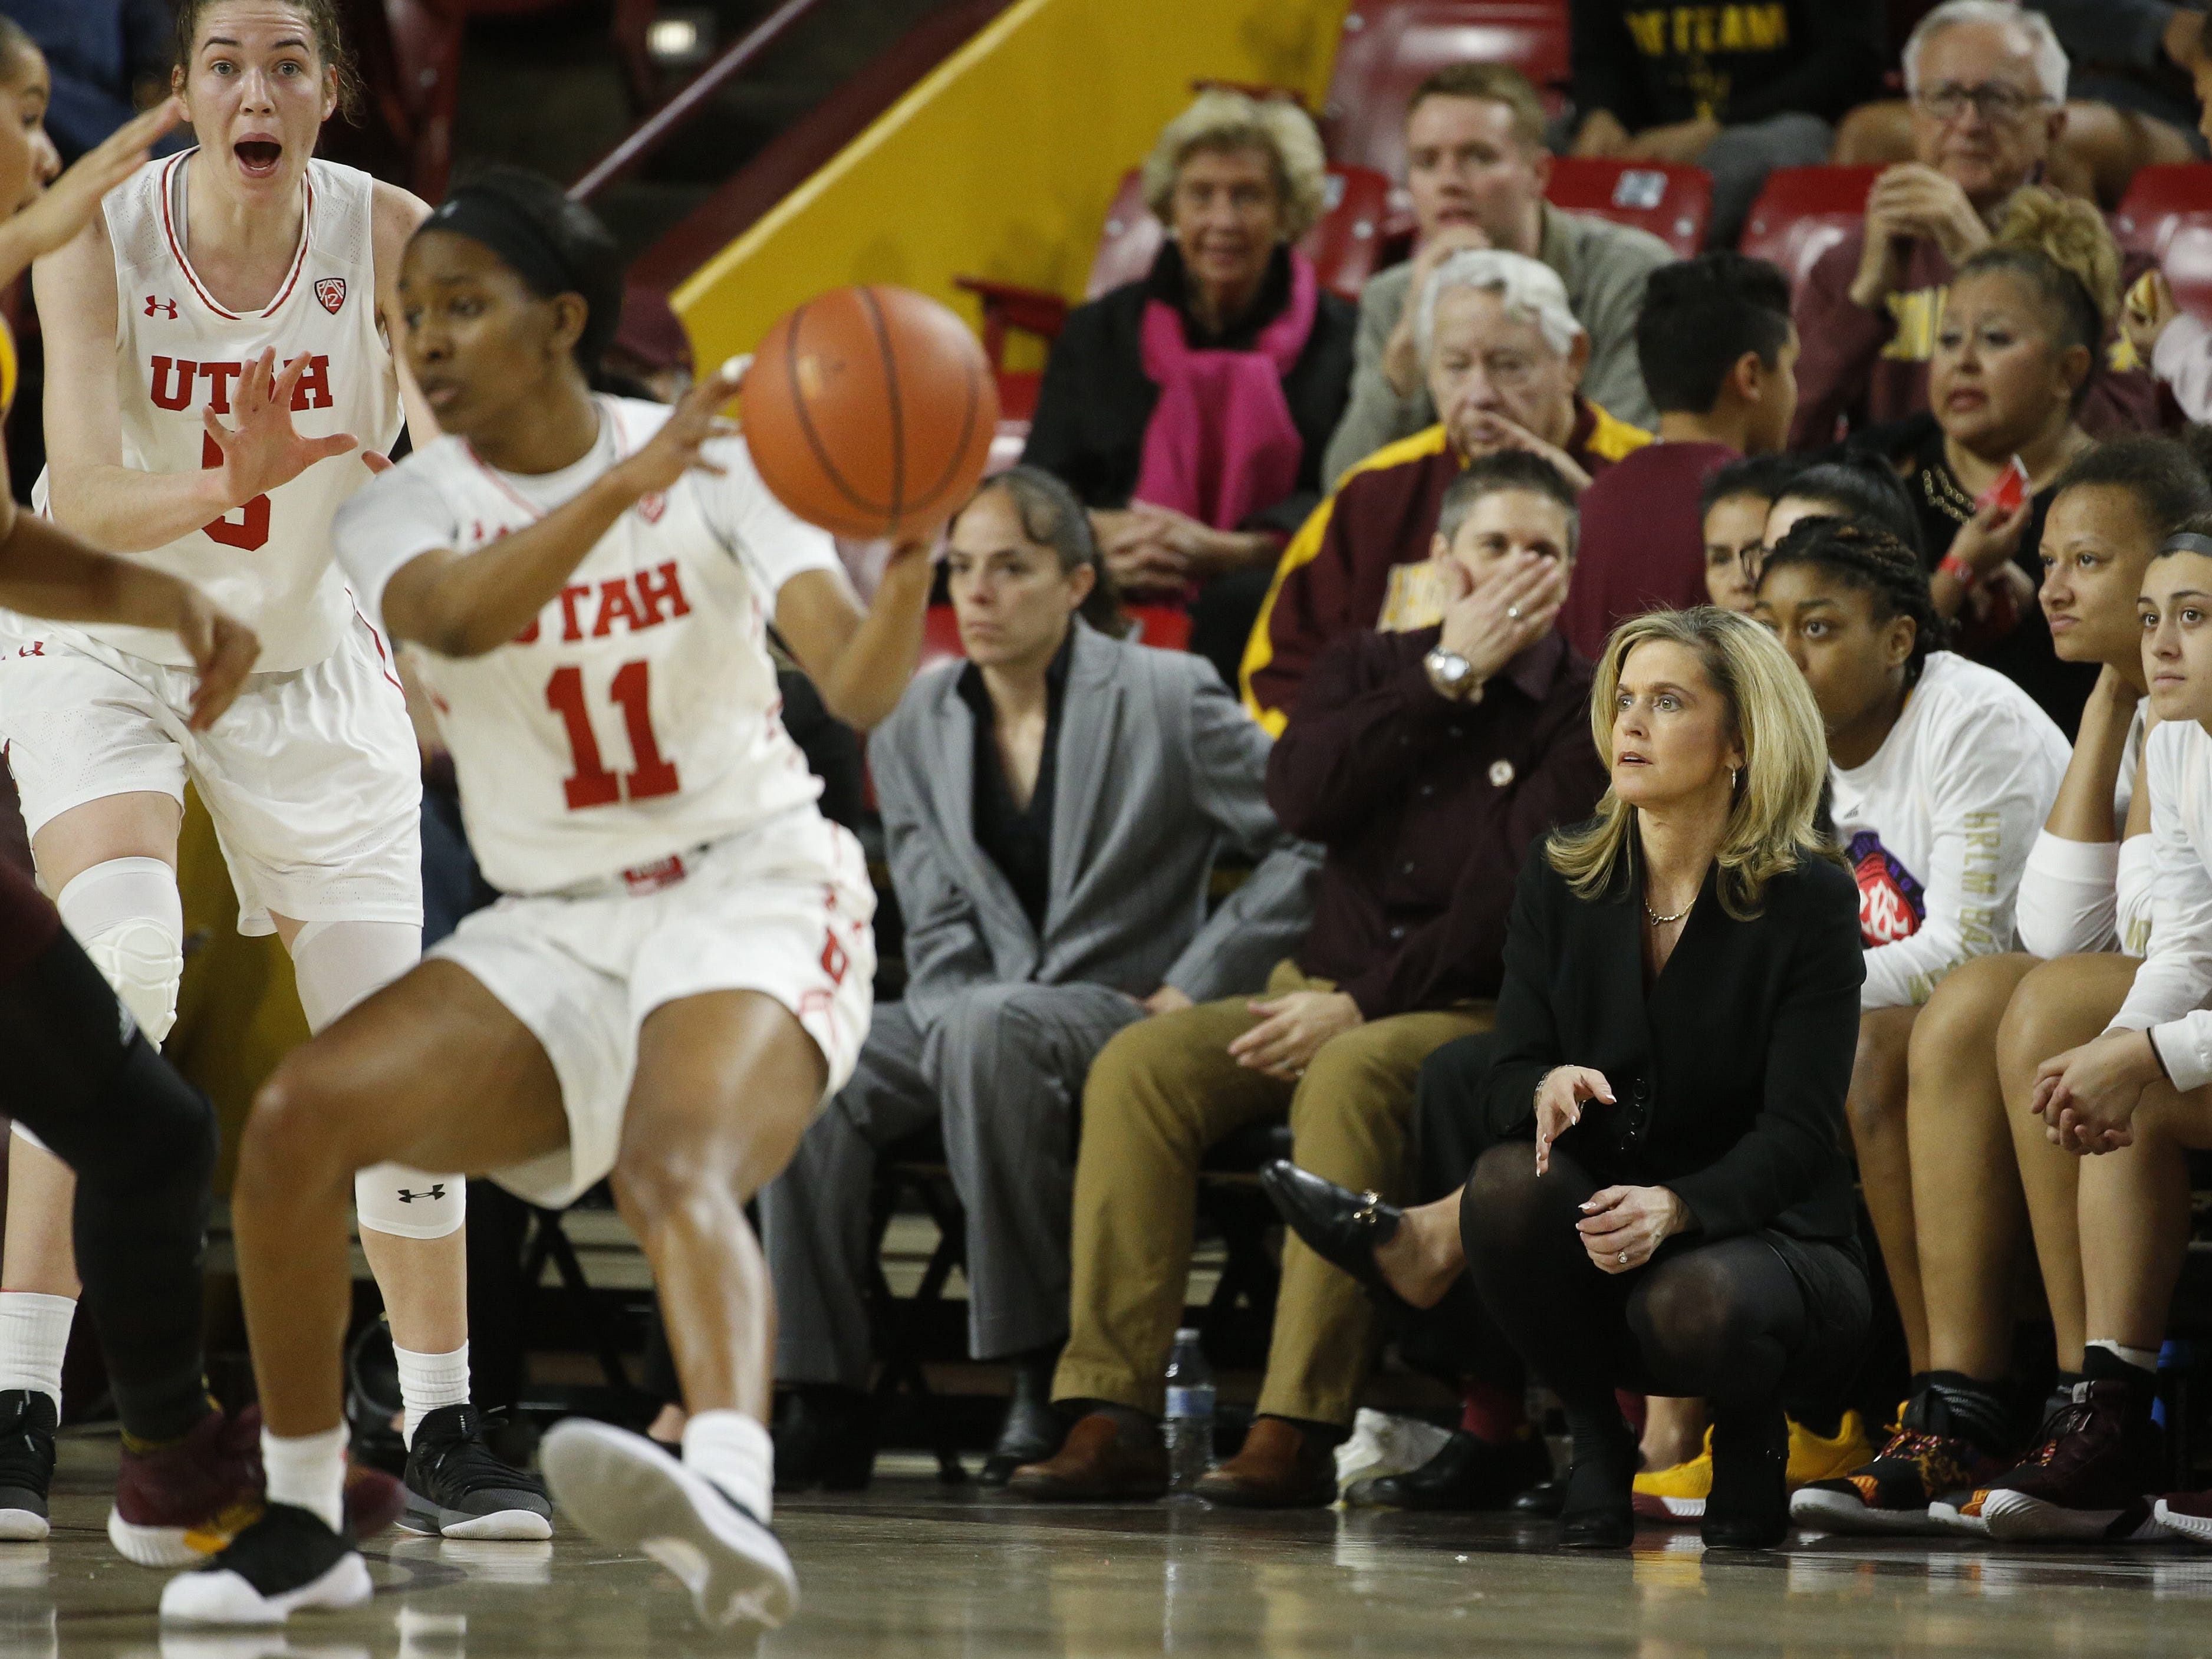 ASU's head coach Charli Turner Thorne watches her team take on Utah during the first half at Wells Fargo Arena in Tempe, Ariz. on February 17, 2019.